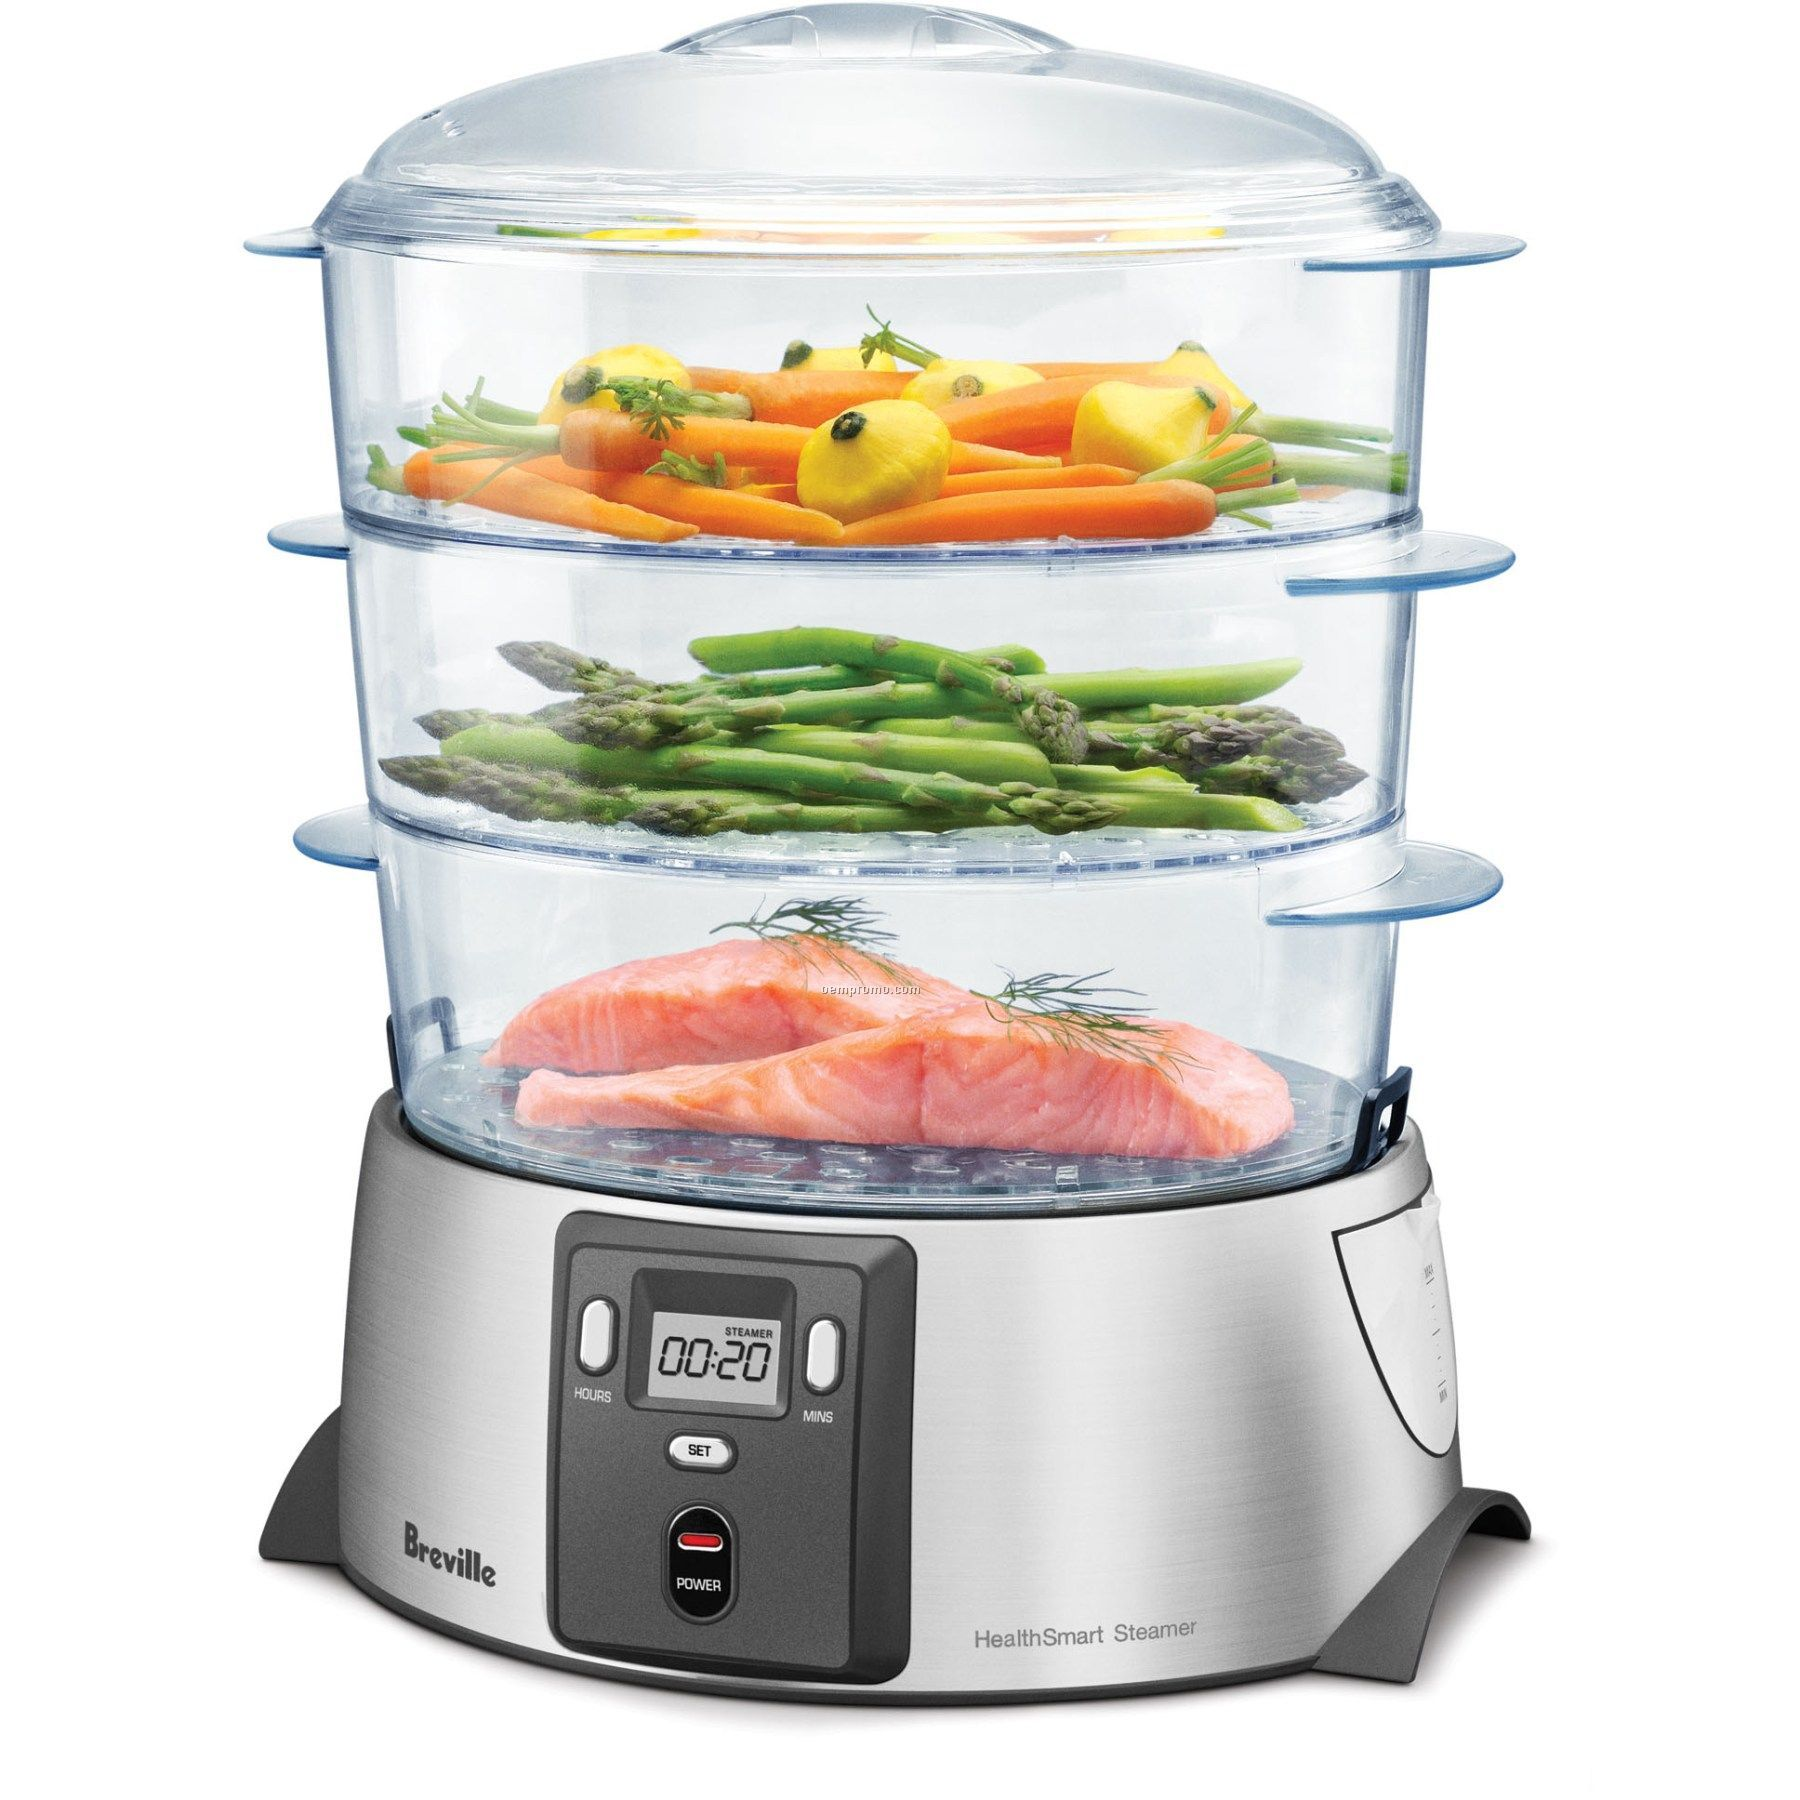 Breville Health Smart Steamer